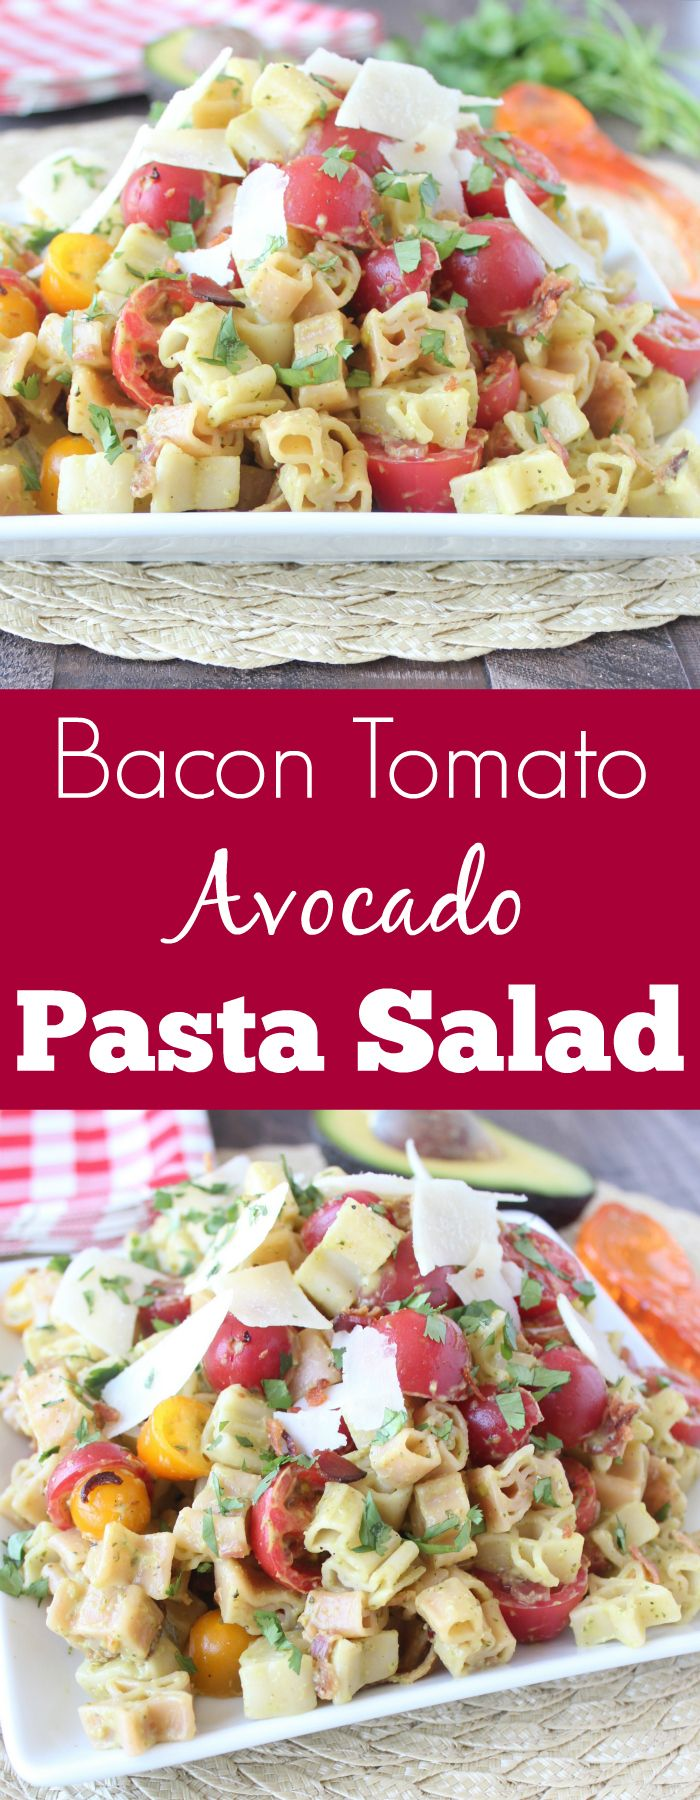 Crispy Bacon, Juicy Tomatoes & Creamy Avocado Dressing make this one delicious pasta salad! Make it with #WorldMarket Stars & Stripes Pasta for a festive 4th of July side dish! #WorldMarketTribe